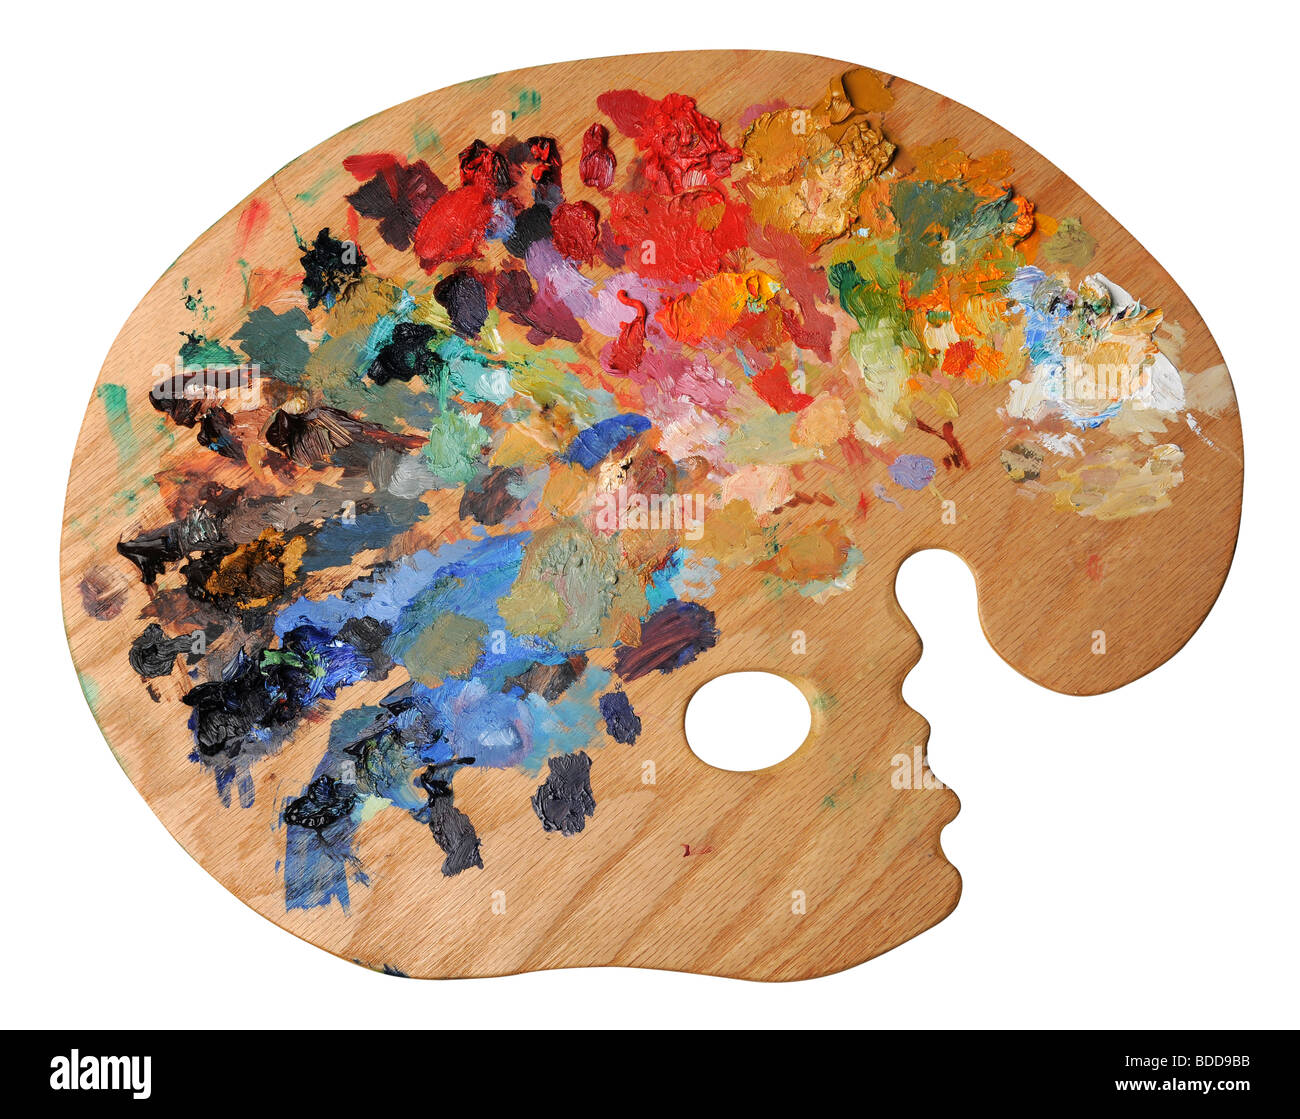 Ergonomic artist's palette isolated over a white background - Stock Image